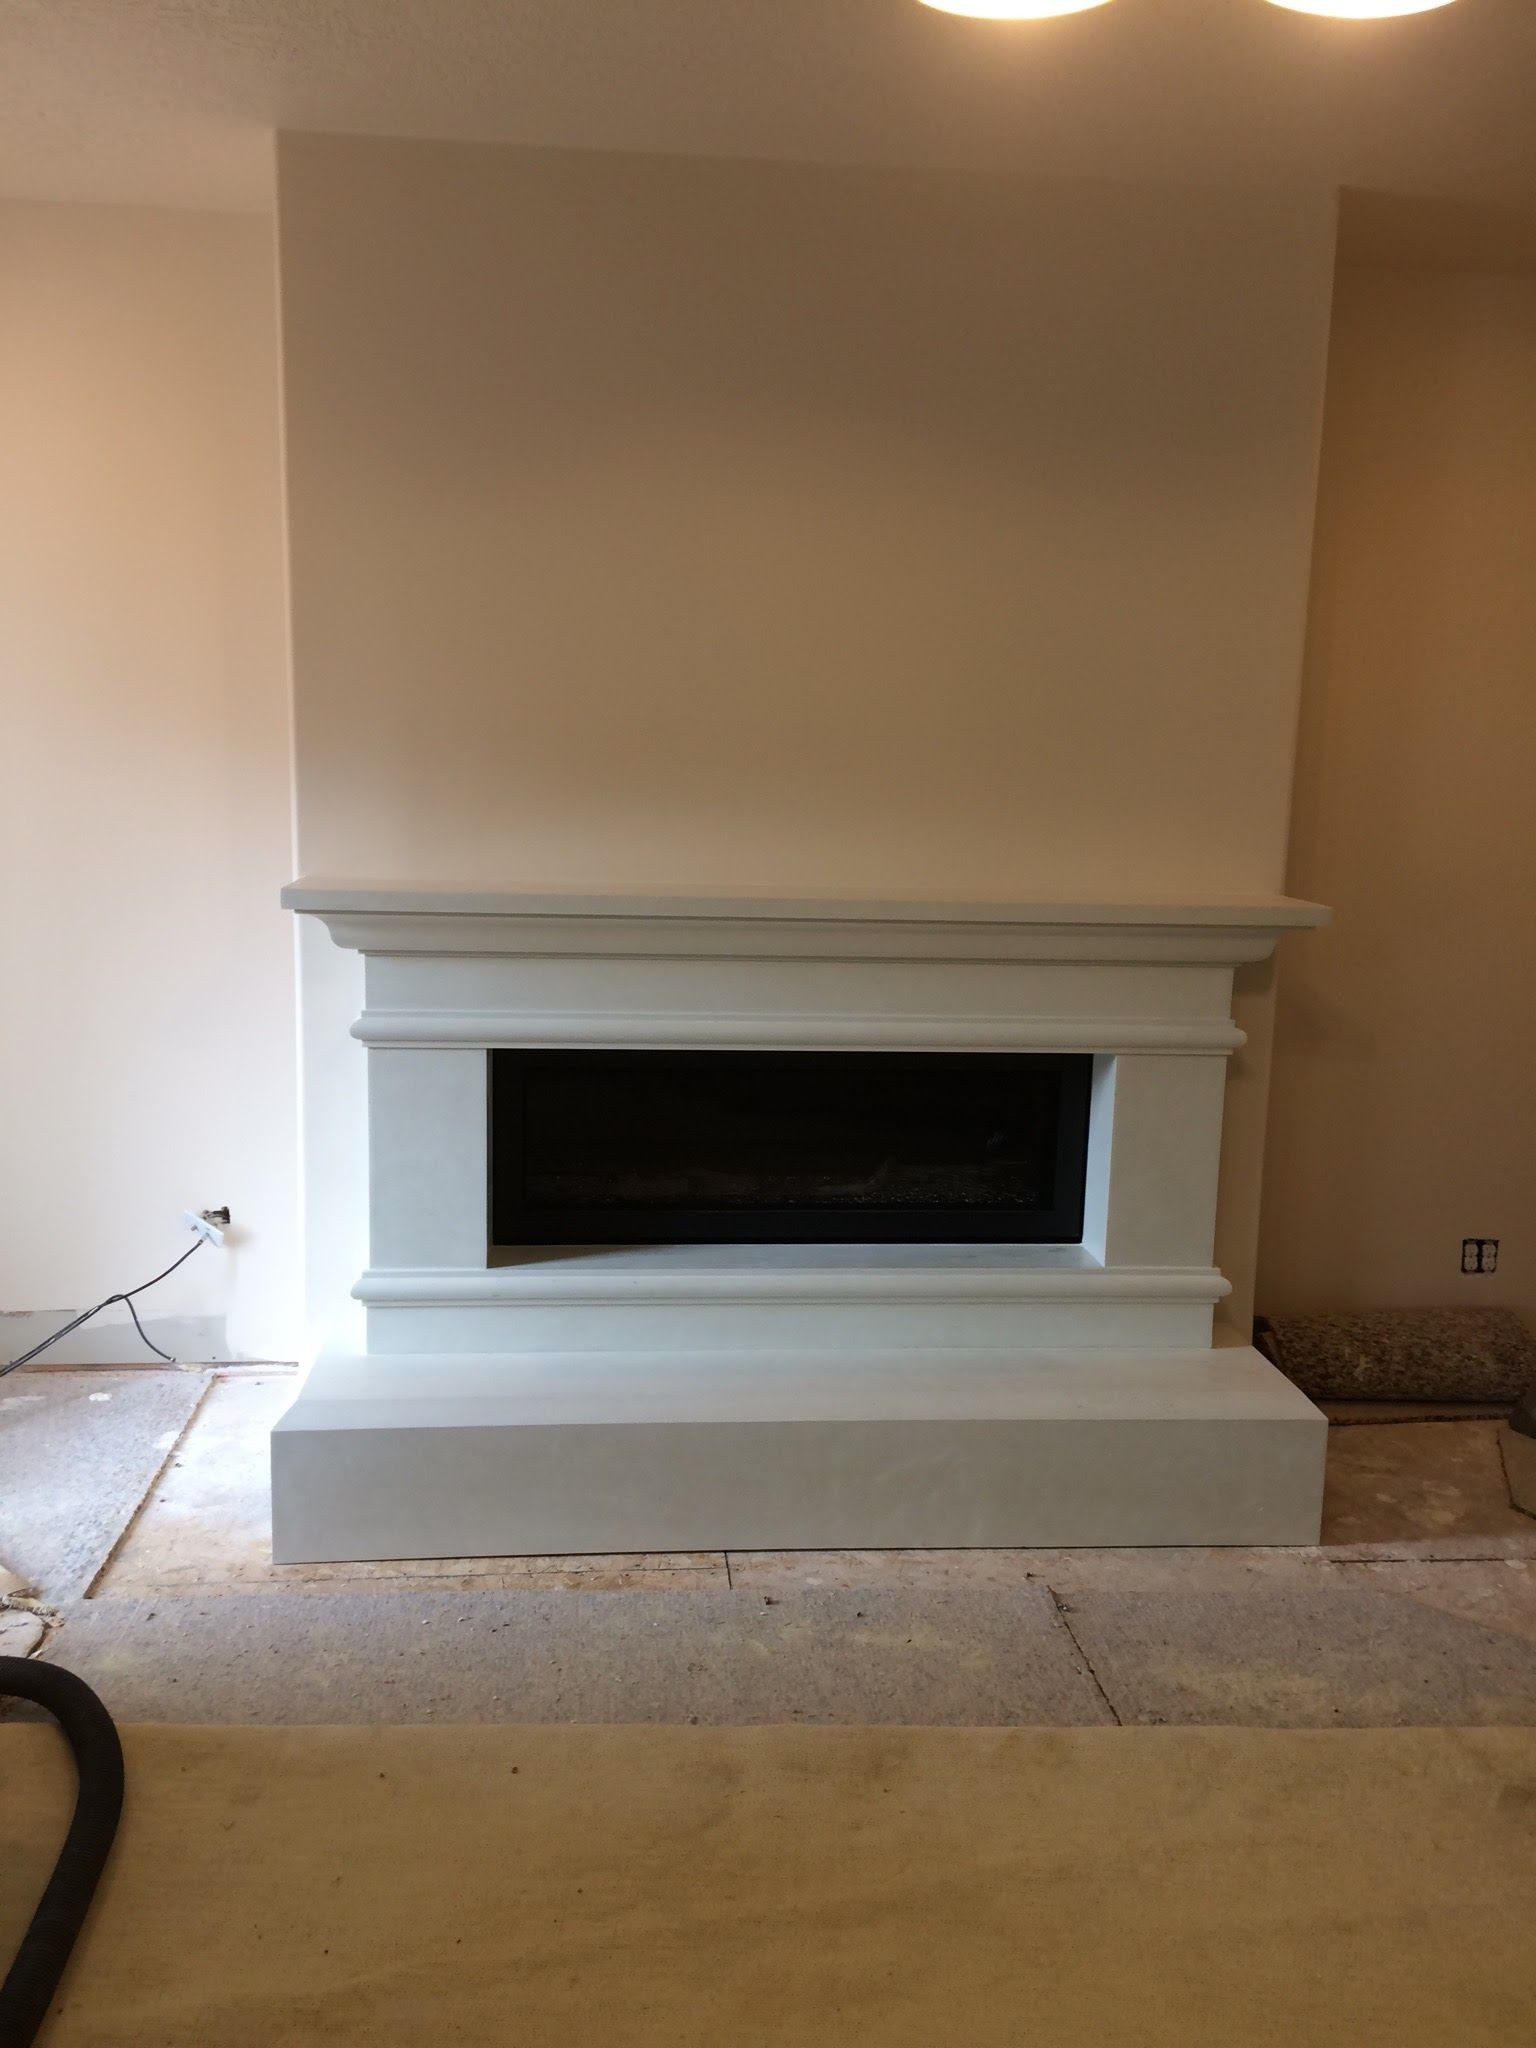 Traditional Style Mantel For Linear Fireplace Insert Stonemountaincastingsfavs Linear Fireplace Build A